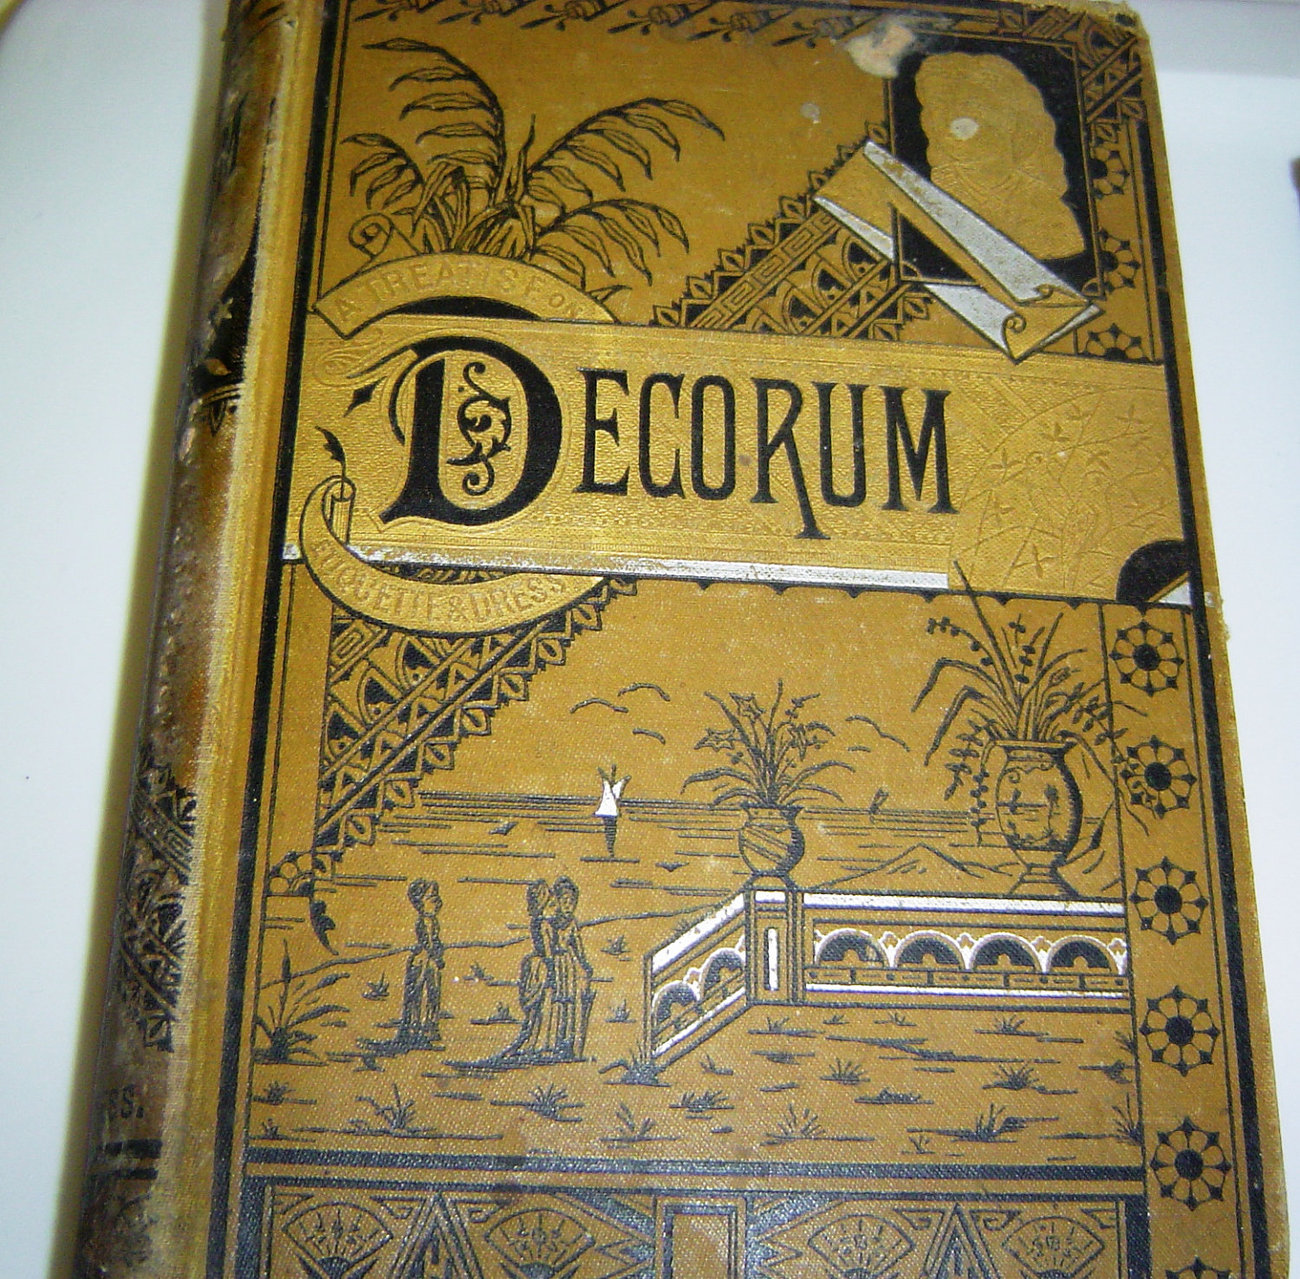 Antique 1800s Vinatage Etiquette Book Titled Decorum  Was 74.95 Now Only 54.95